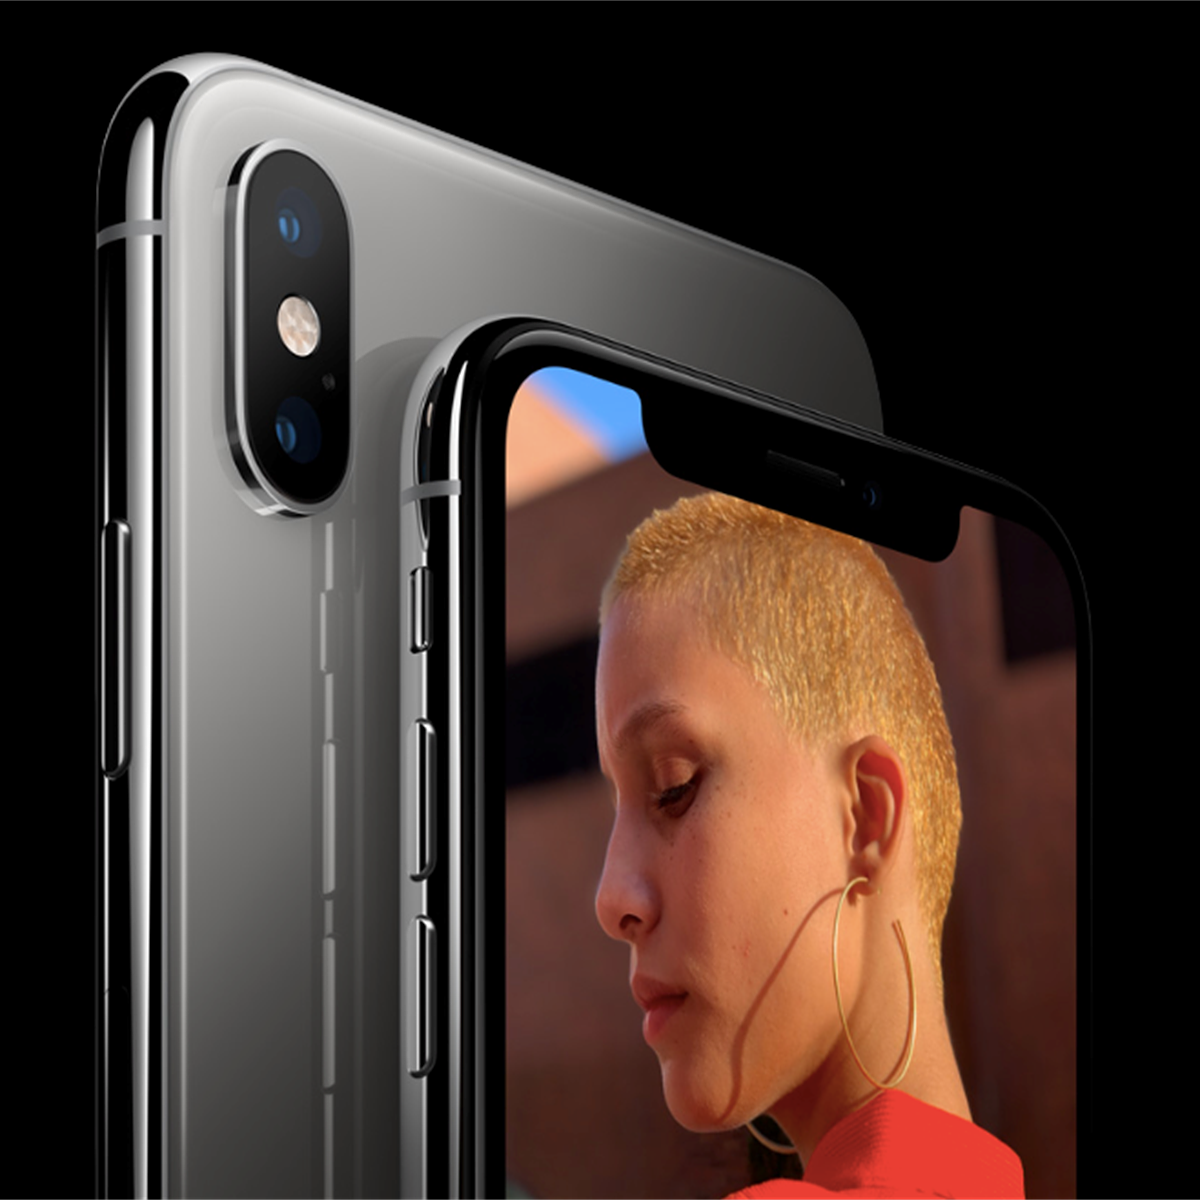 310497eb05ae72 Apple to fix 'beauty filter' issue with iOS 12.1 update: Digital ...